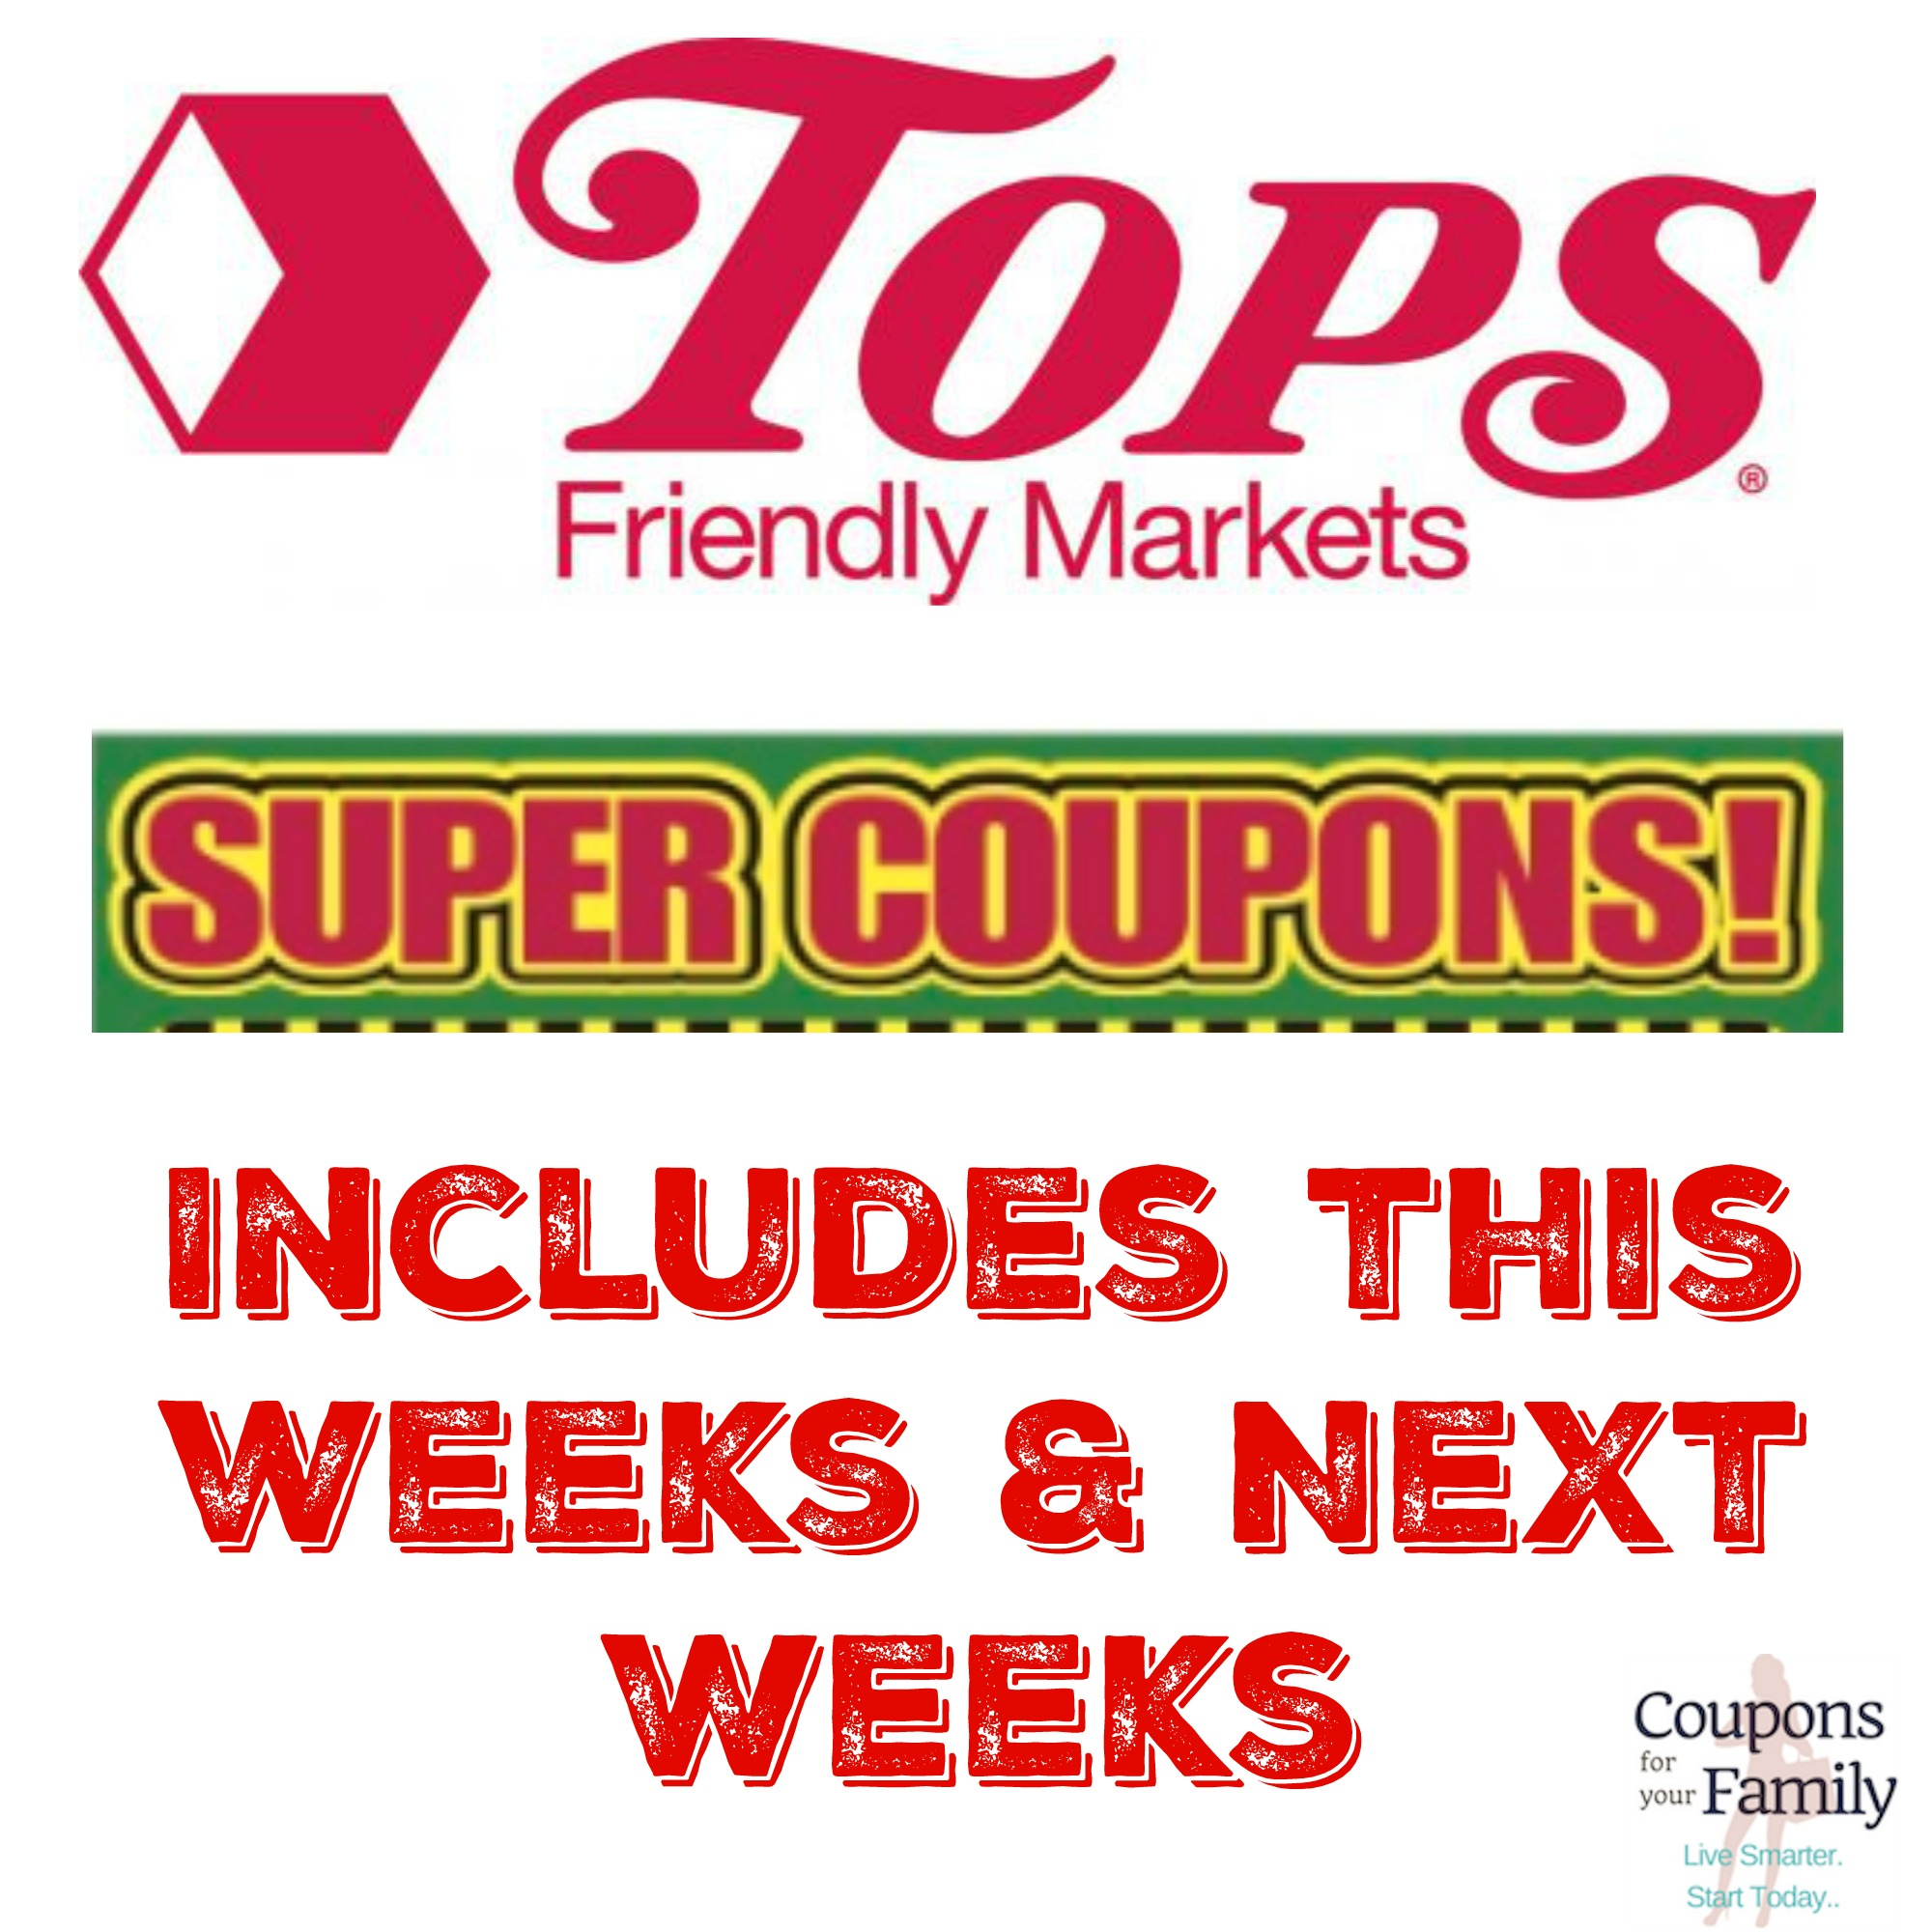 Scan this weeks Tops Coupons & Super Coupons right here (next weeks included too) includes doublers!